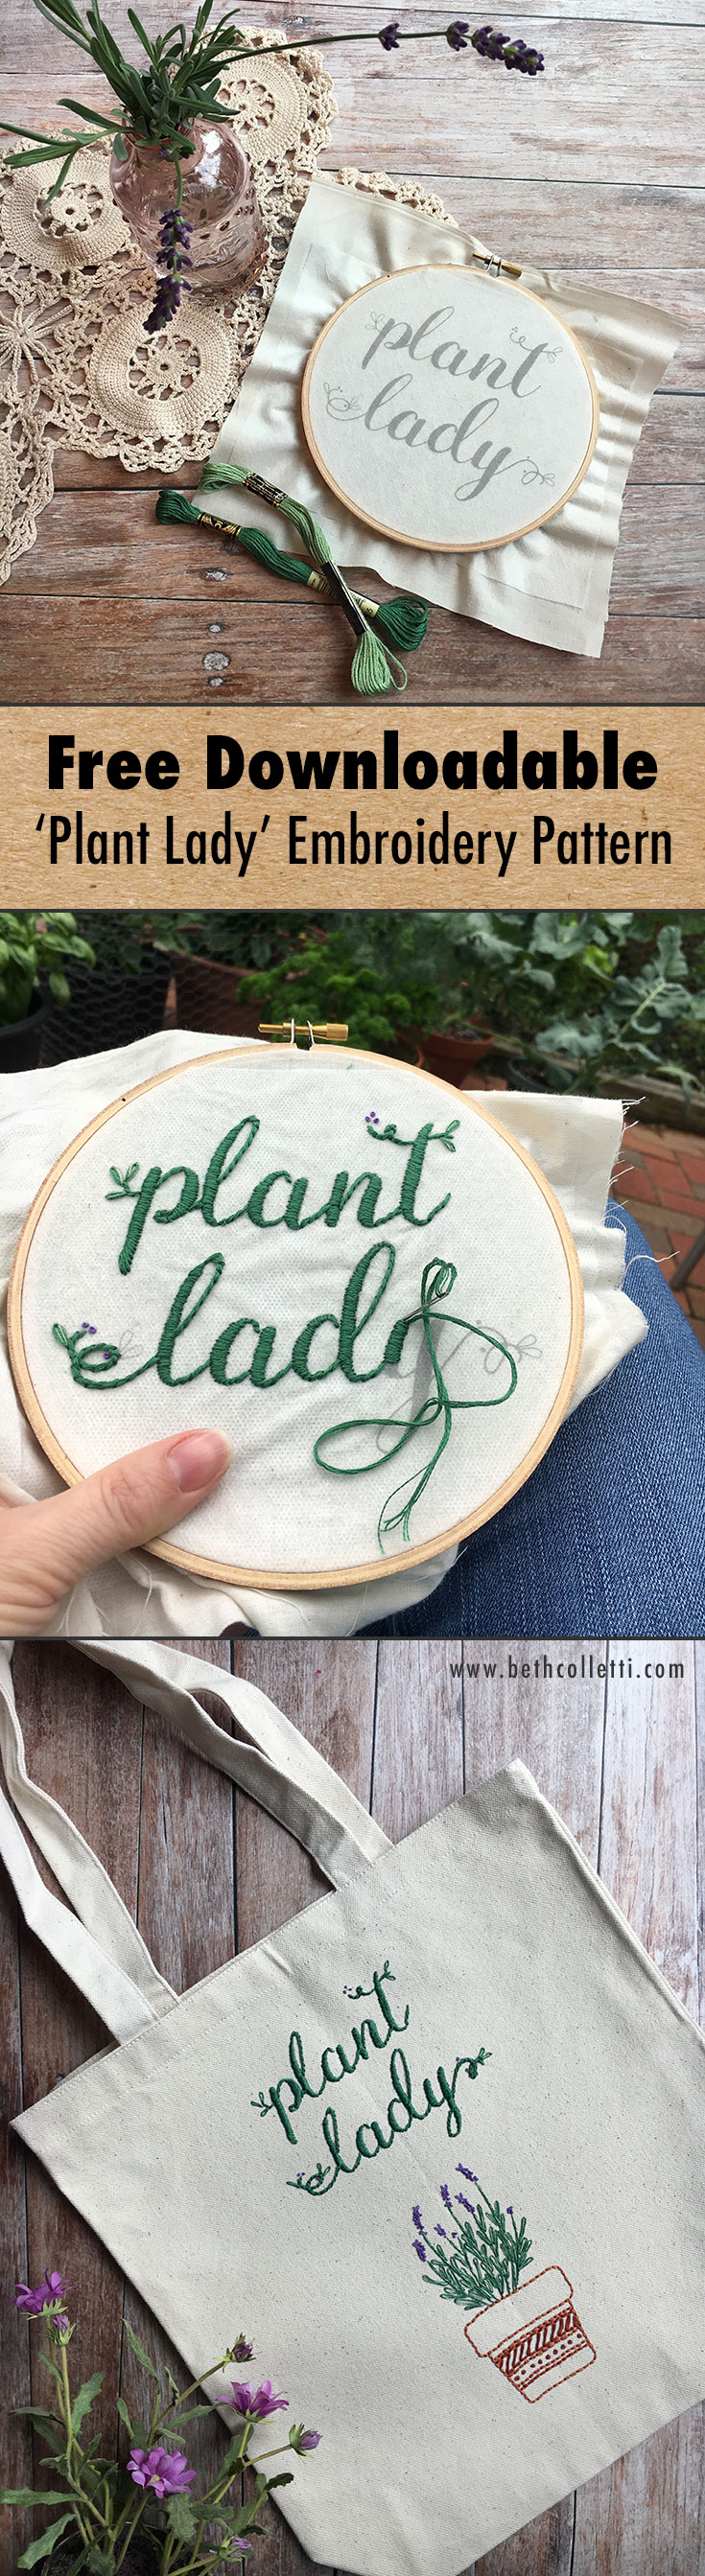 "Download this free ""Plant Lady"" embroidery pattern!"